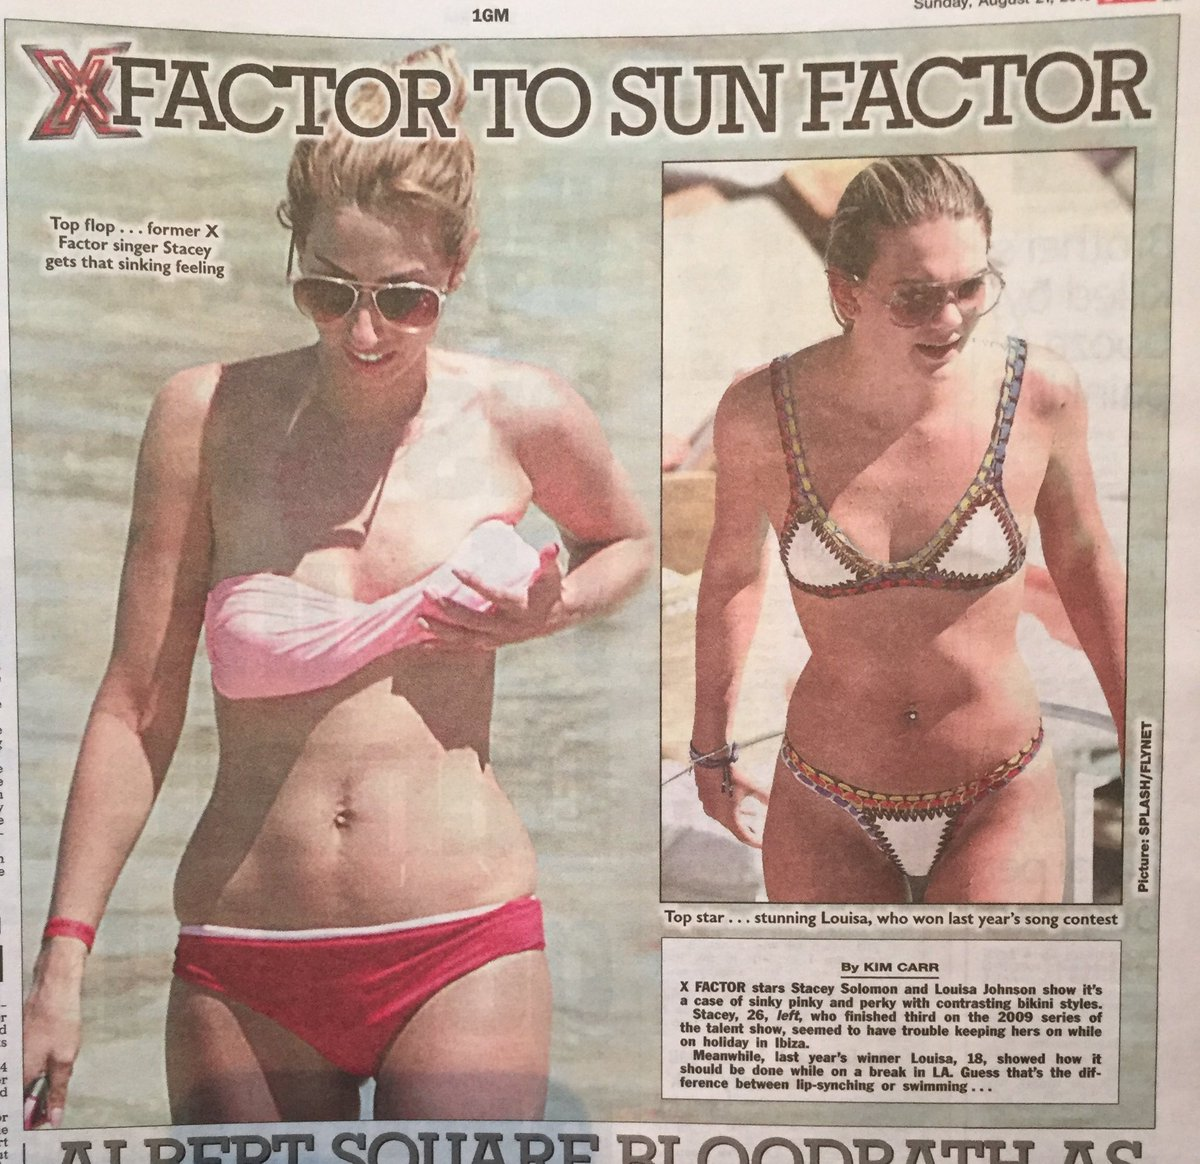 I LOVE MY BODY @TheSun My boobs are a result of being pregnant & breast feeding & I love them. I Am just as sexy!